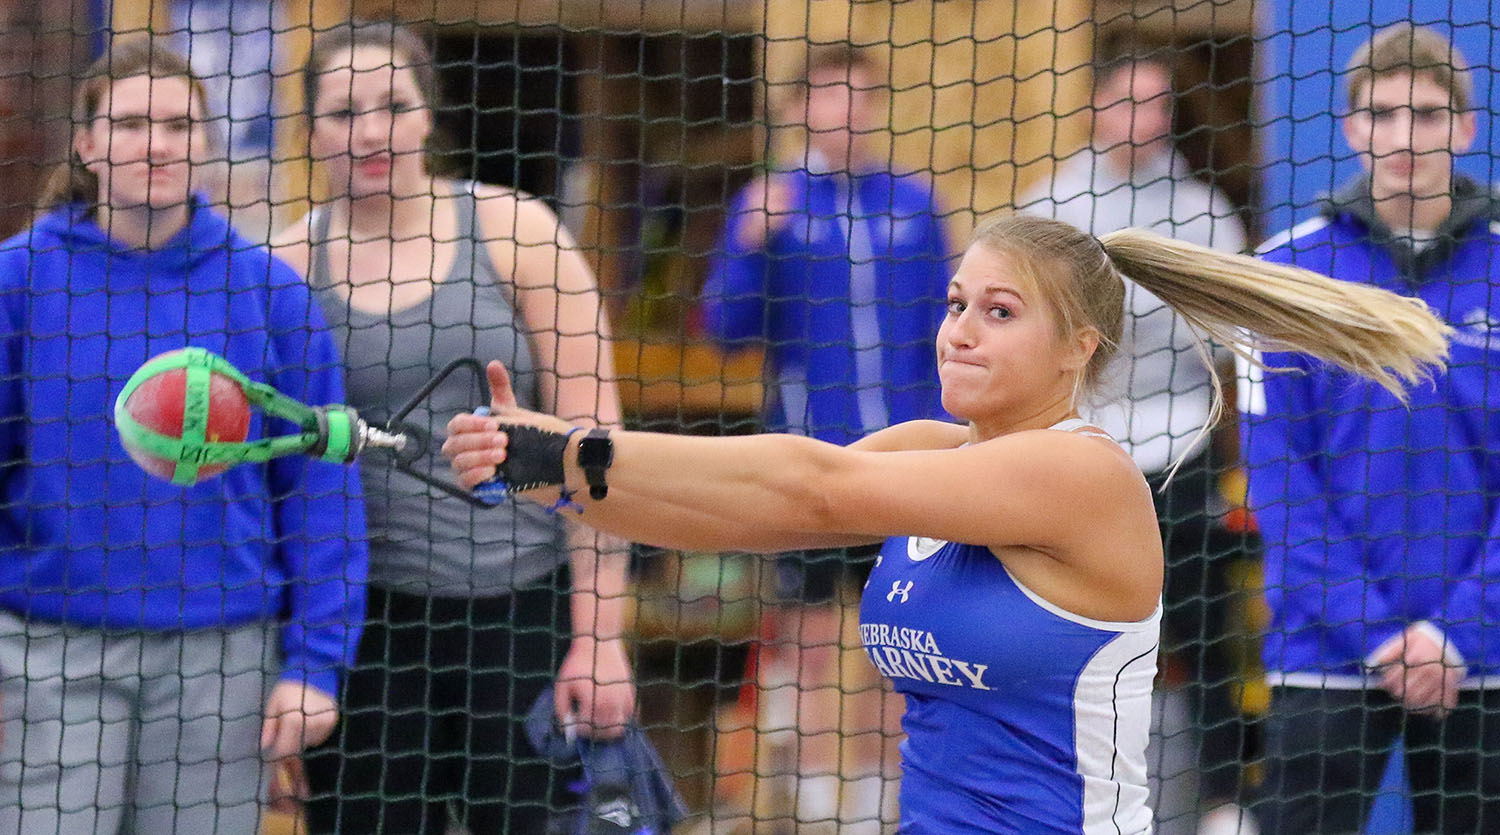 Tiara Schmidt holds the UNK record in the indoor weight throw with a toss of 63 feet, 1 1/2 inches. That's more than 3 feet farther than second place.